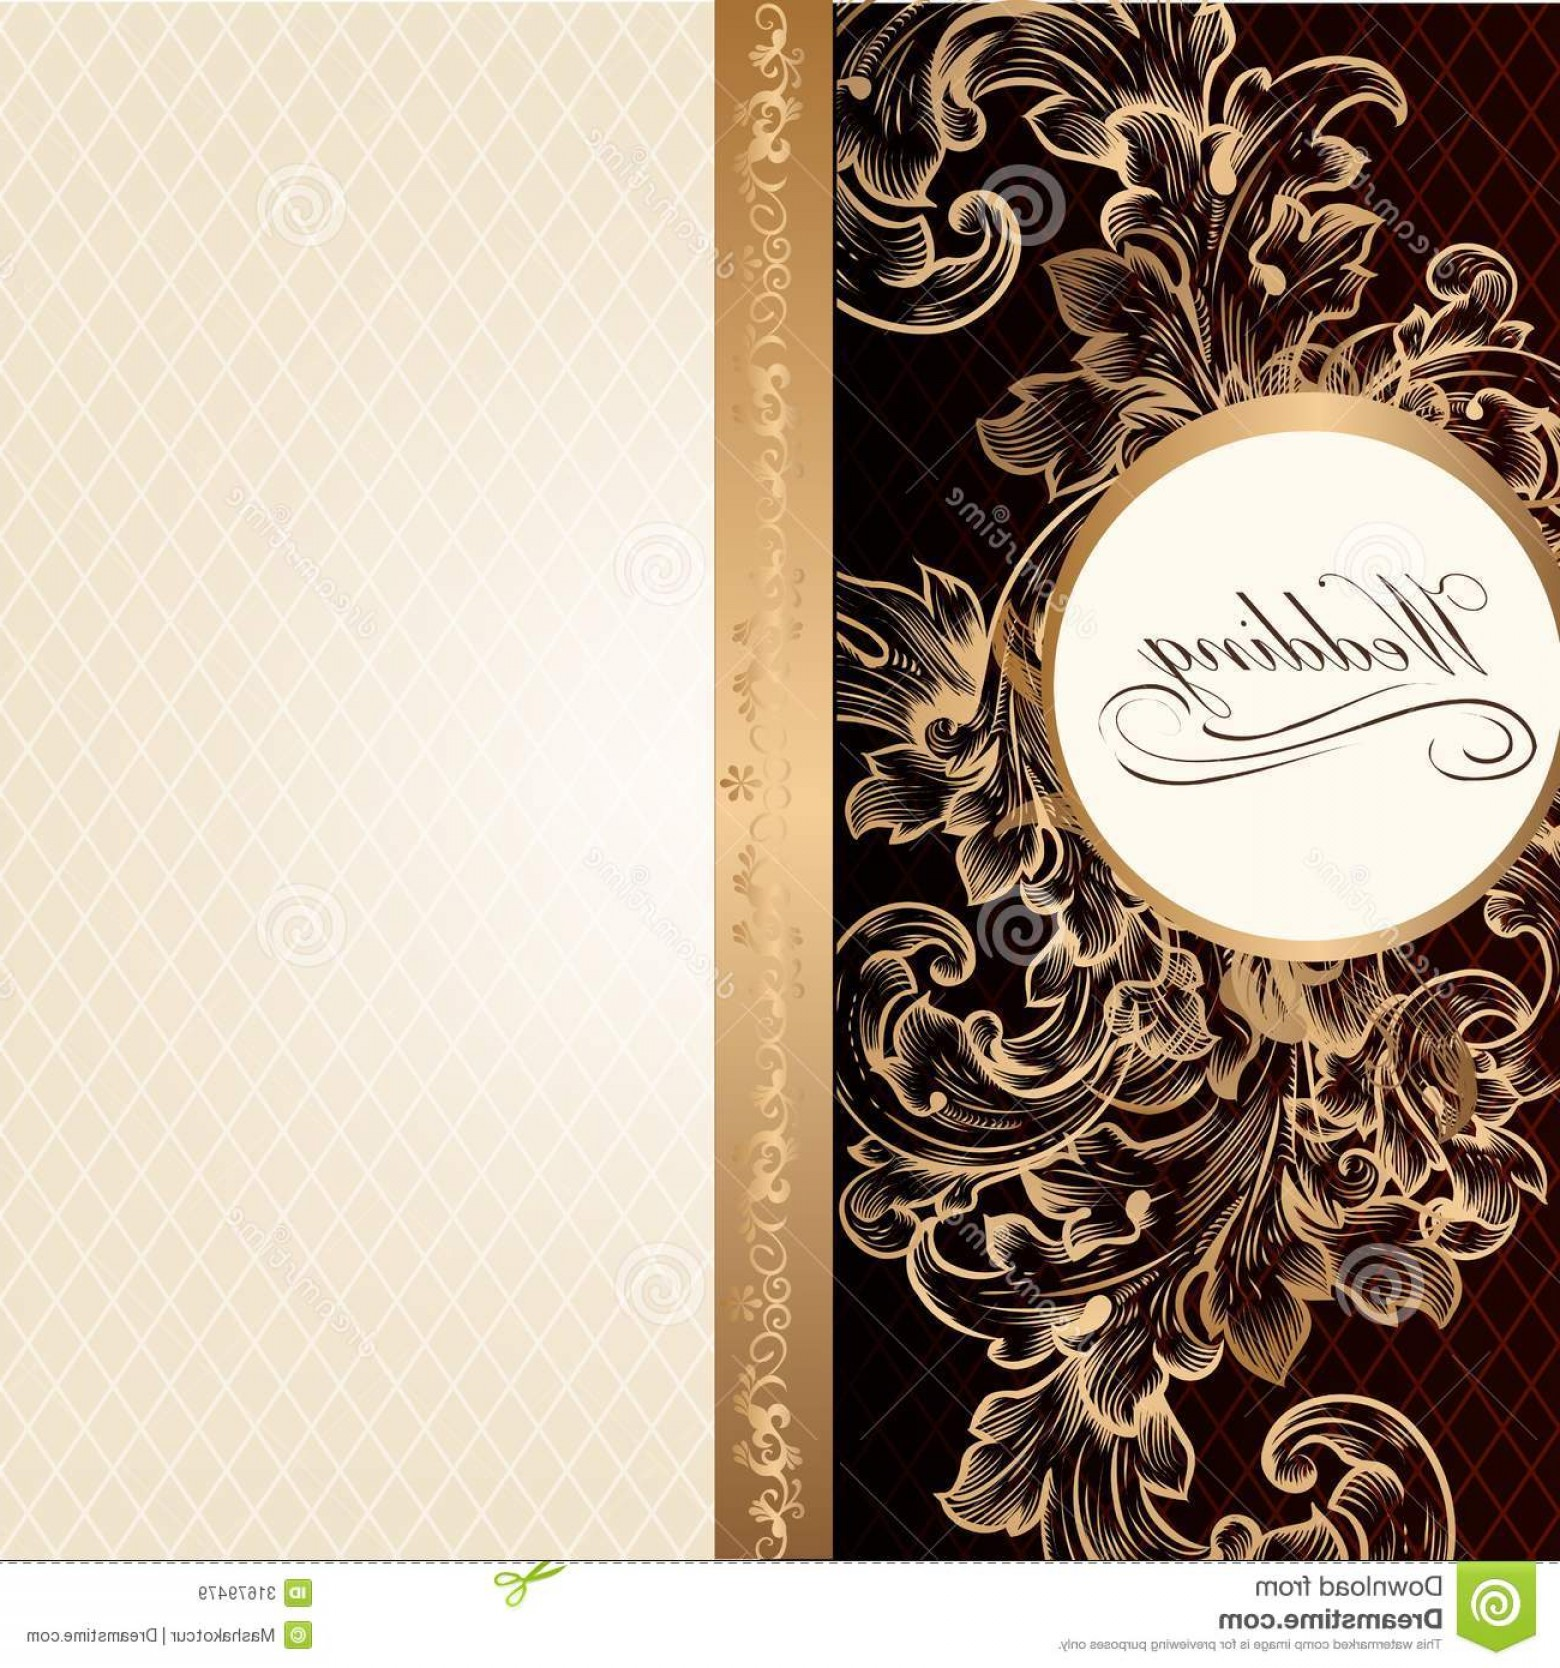 Elegant Wedding Vector Graphics: Royalty Free Stock Images Luxury Wedding Invitation Card Retro Style Vintage Ornam Elegant Classic Menu Vector Image